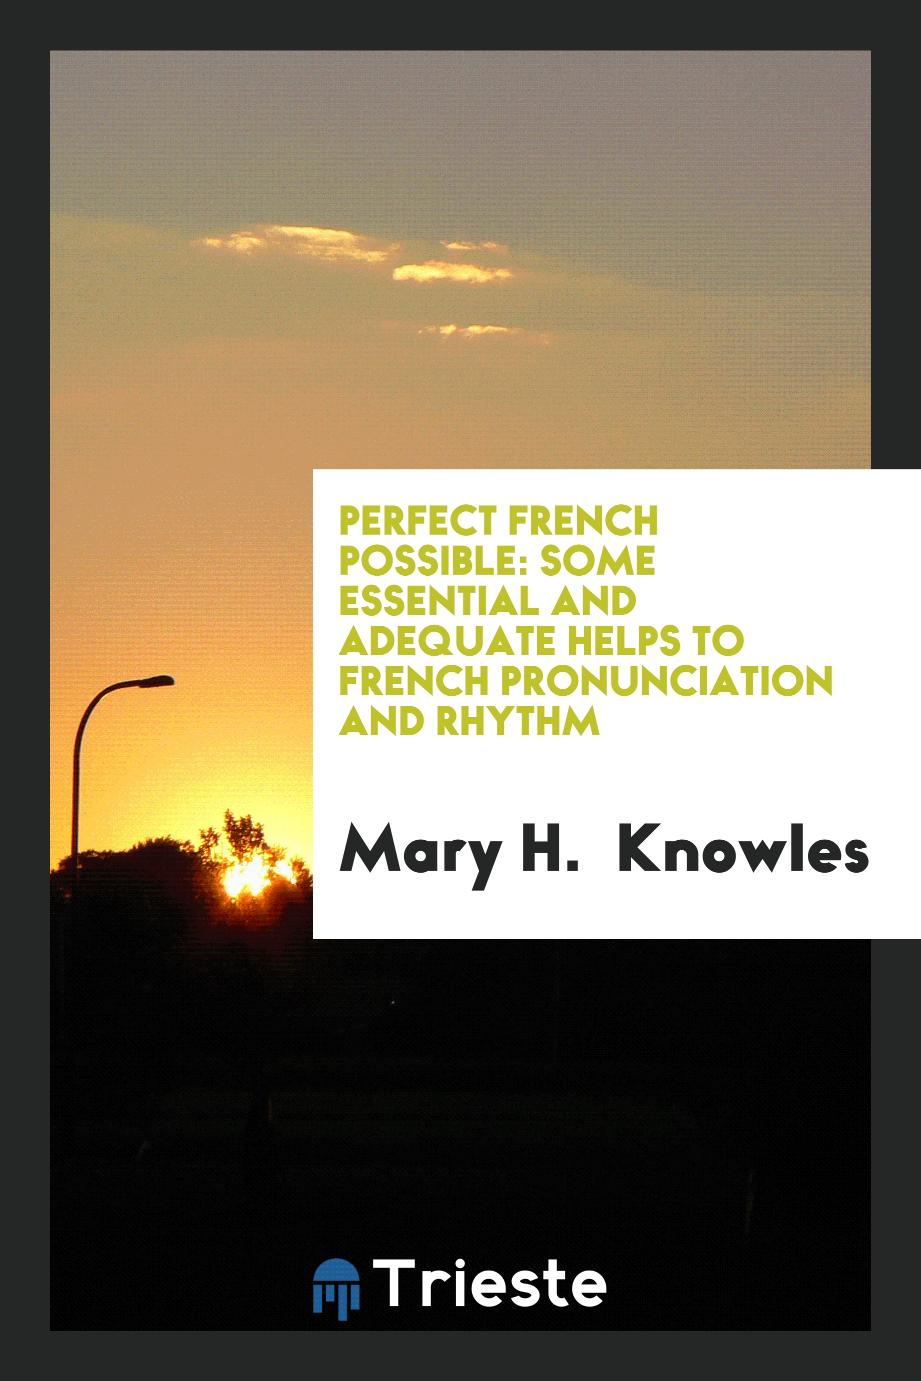 Perfect French possible: some essential and adequate helps to French pronunciation and rhythm